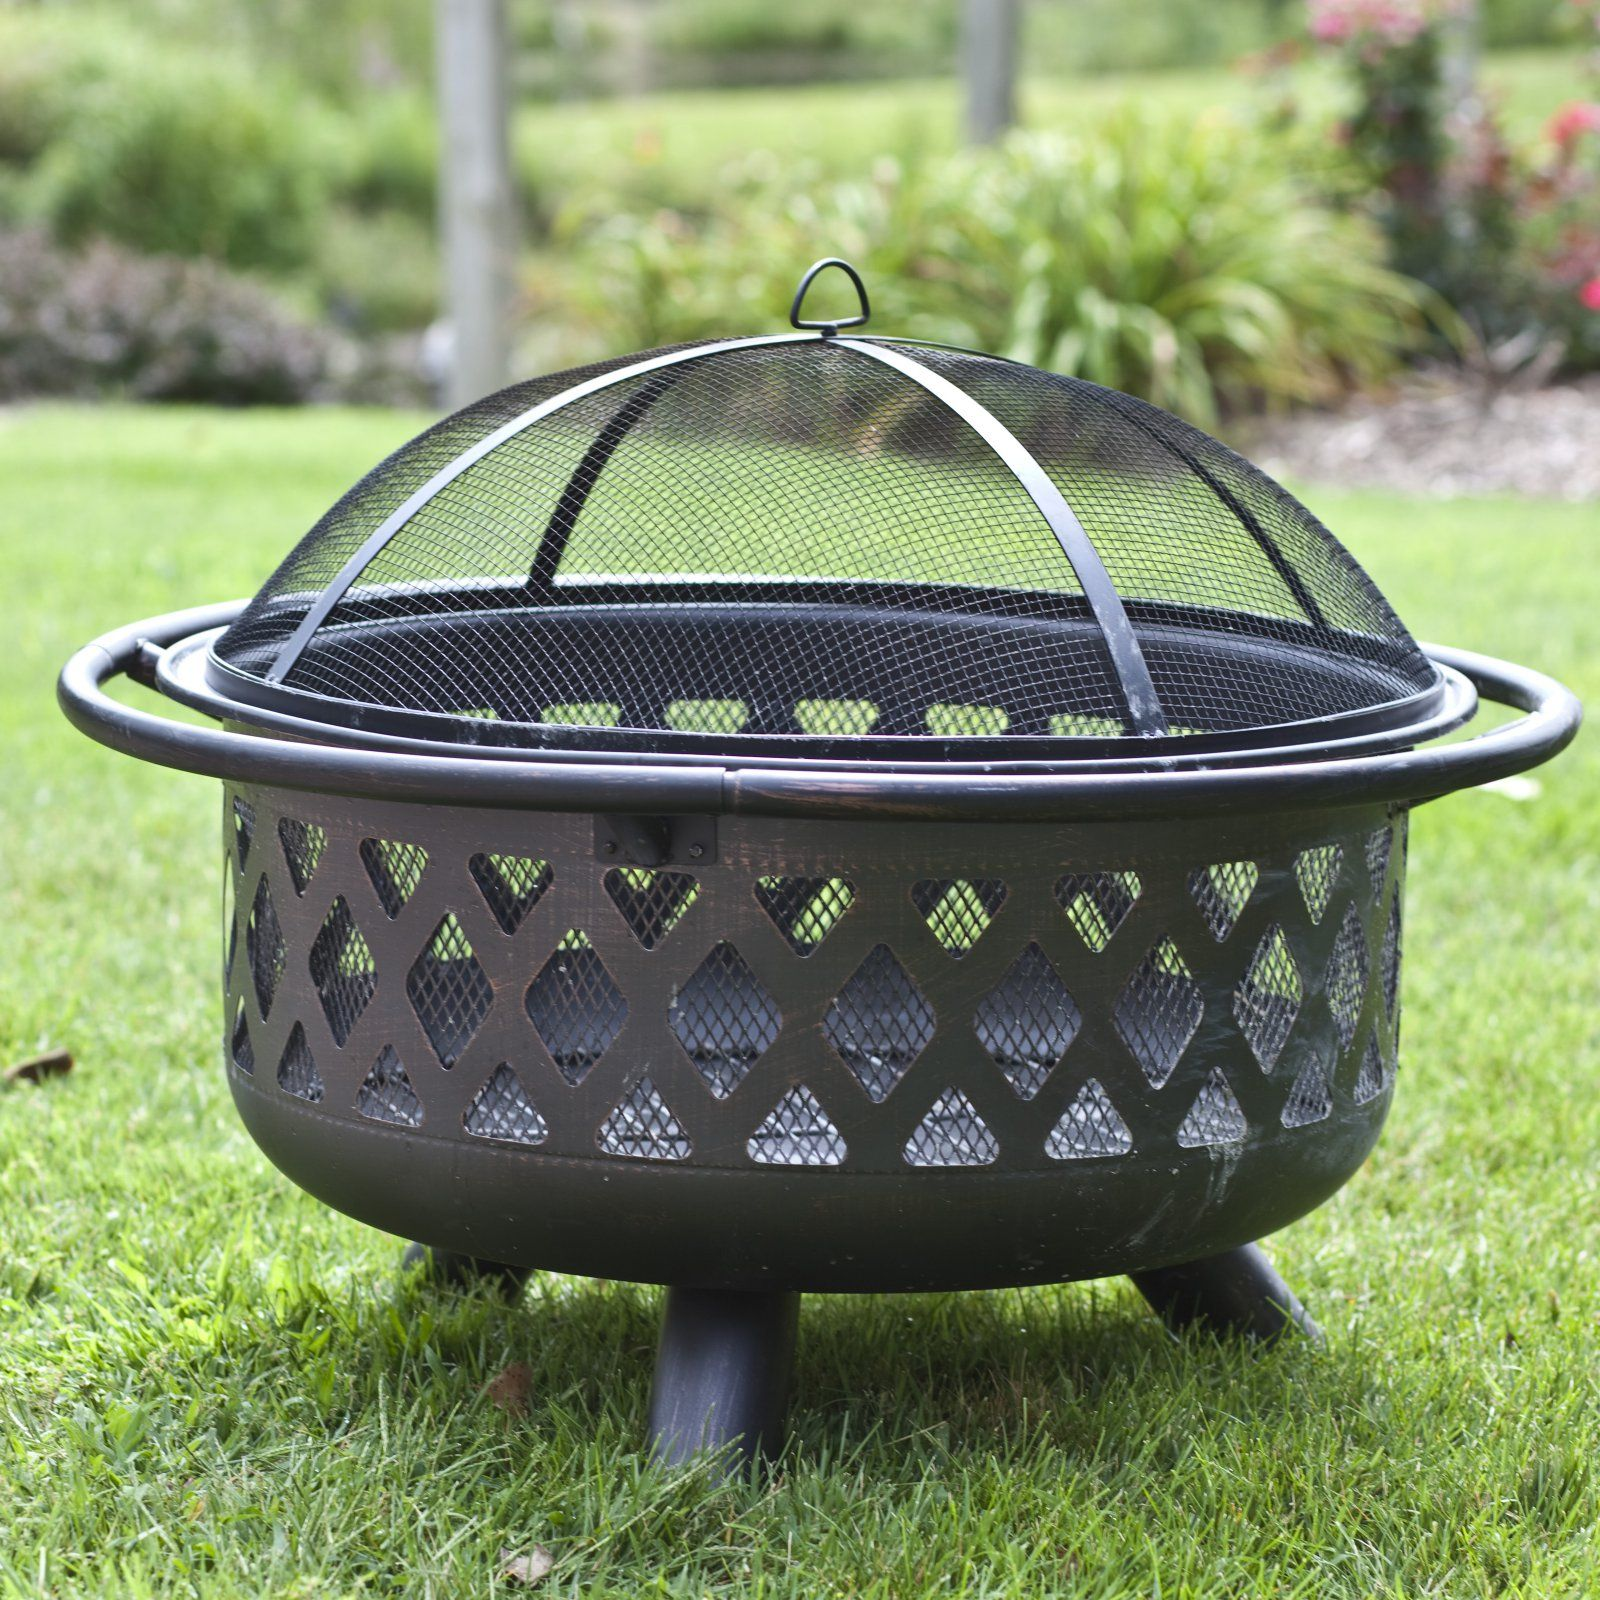 Coral Coast Rubbed Bronze Crossweave 36 In Wood Burning Fire Pit With Free Grill Grate And Cover Walmart Com Wood Burning Fire Pit Fire Pit Backyard Outdoor Fire Pit Designs